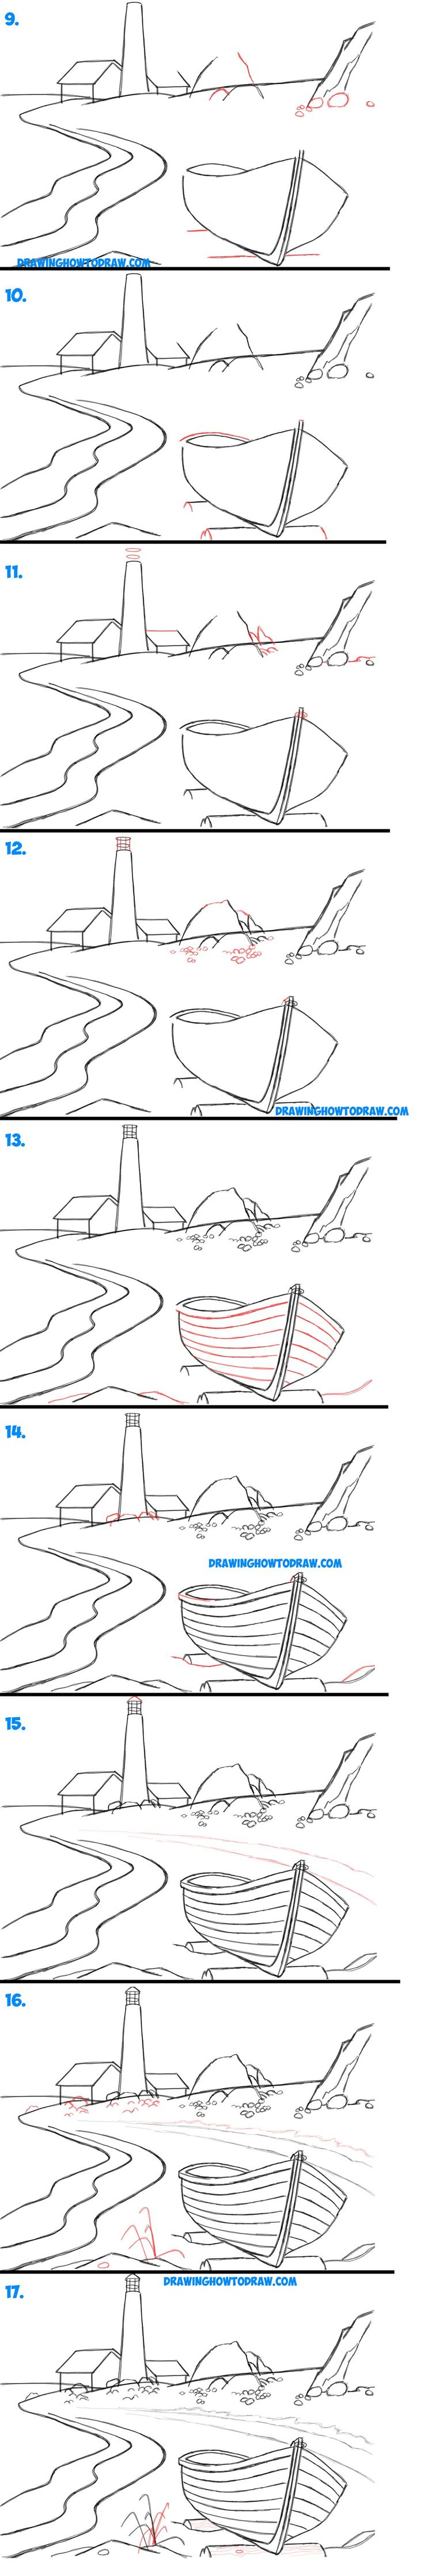 how-to-draw-lighthouse-landscape-with-boat-easy-step-by-step-drawing-tutorial-beginners-and-kids-02.jpg (1100×6685)